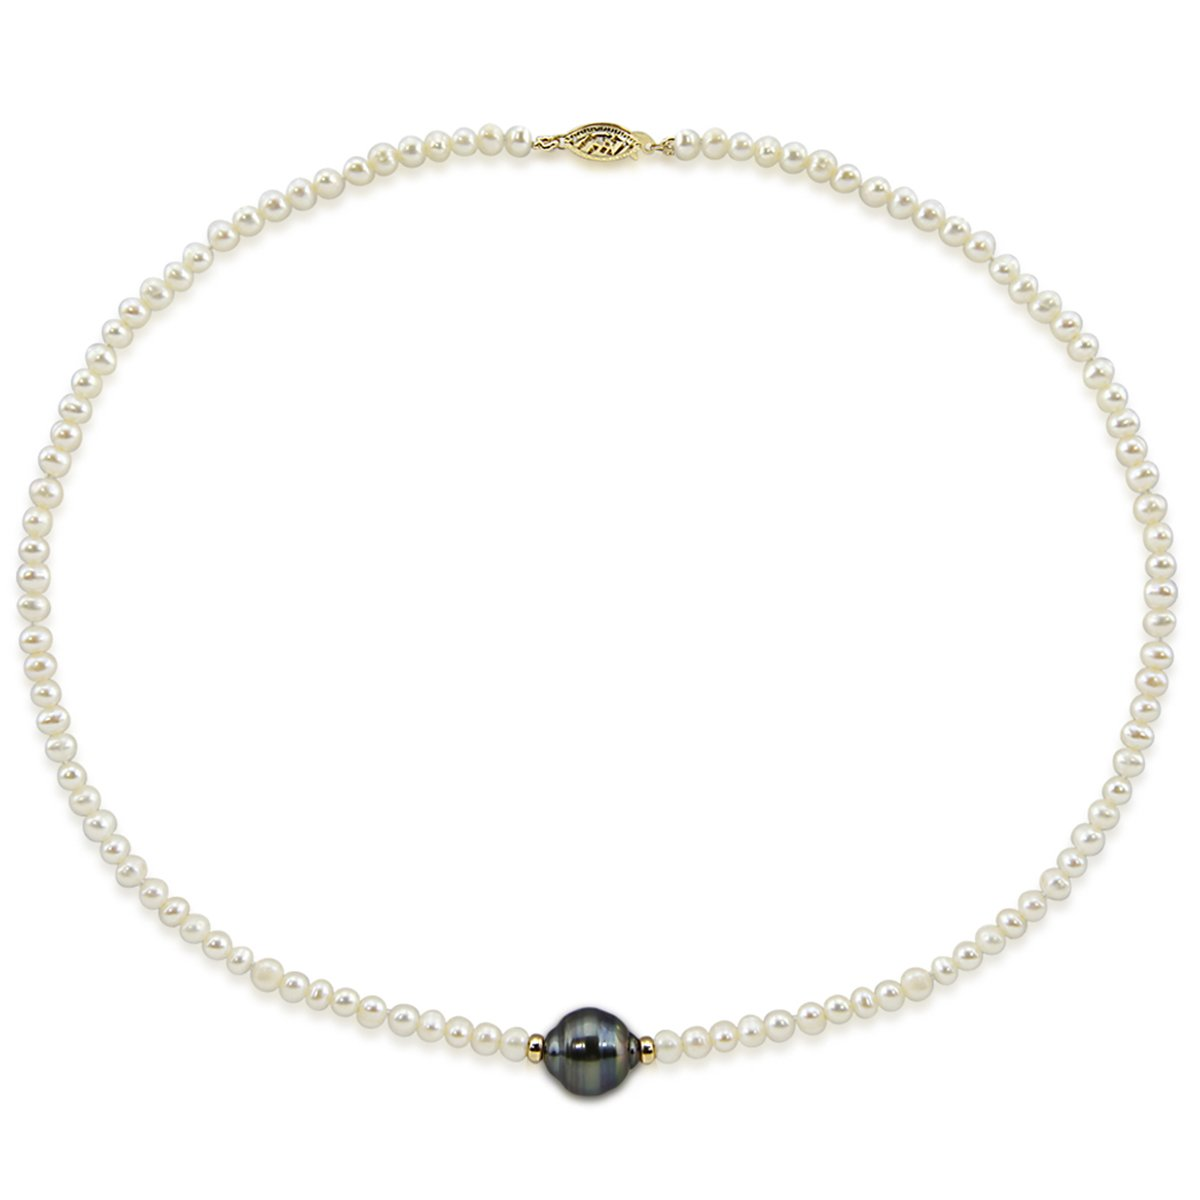 14k Yellow Gold 11-12mm Tahitian Cultured Pearl and 4-5mm White Freshwater Cultured Pearl Necklace,16